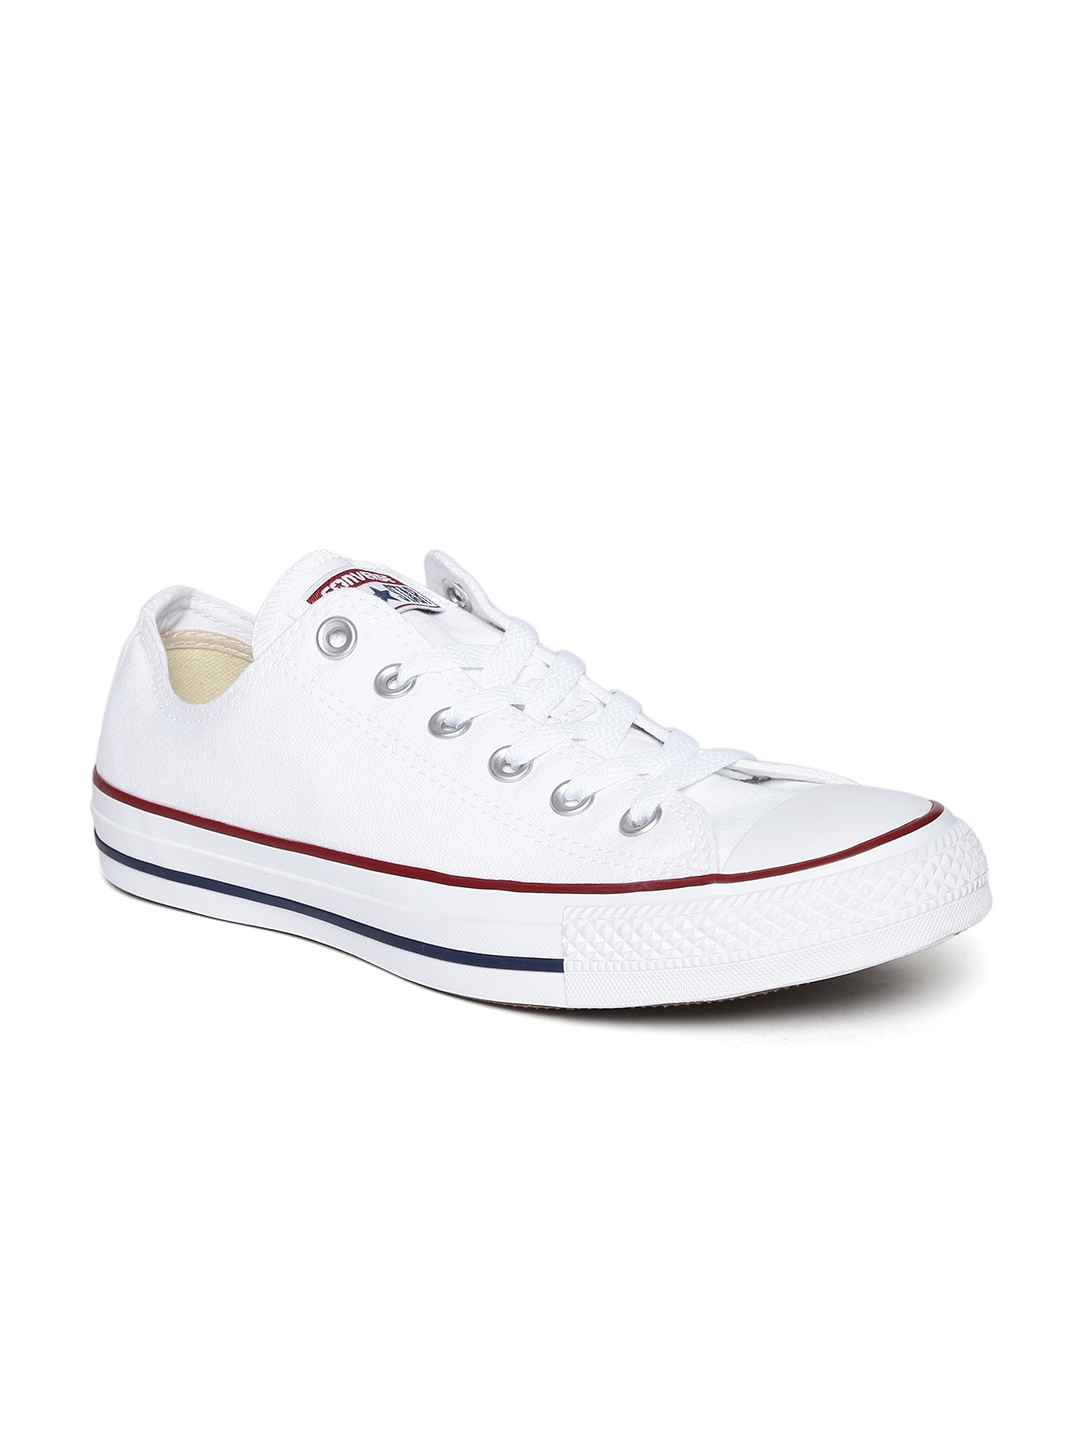 d85cff49d8b8 Buy Converse Unisex White Canvas Shoes - Casual Shoes for Unisex ...